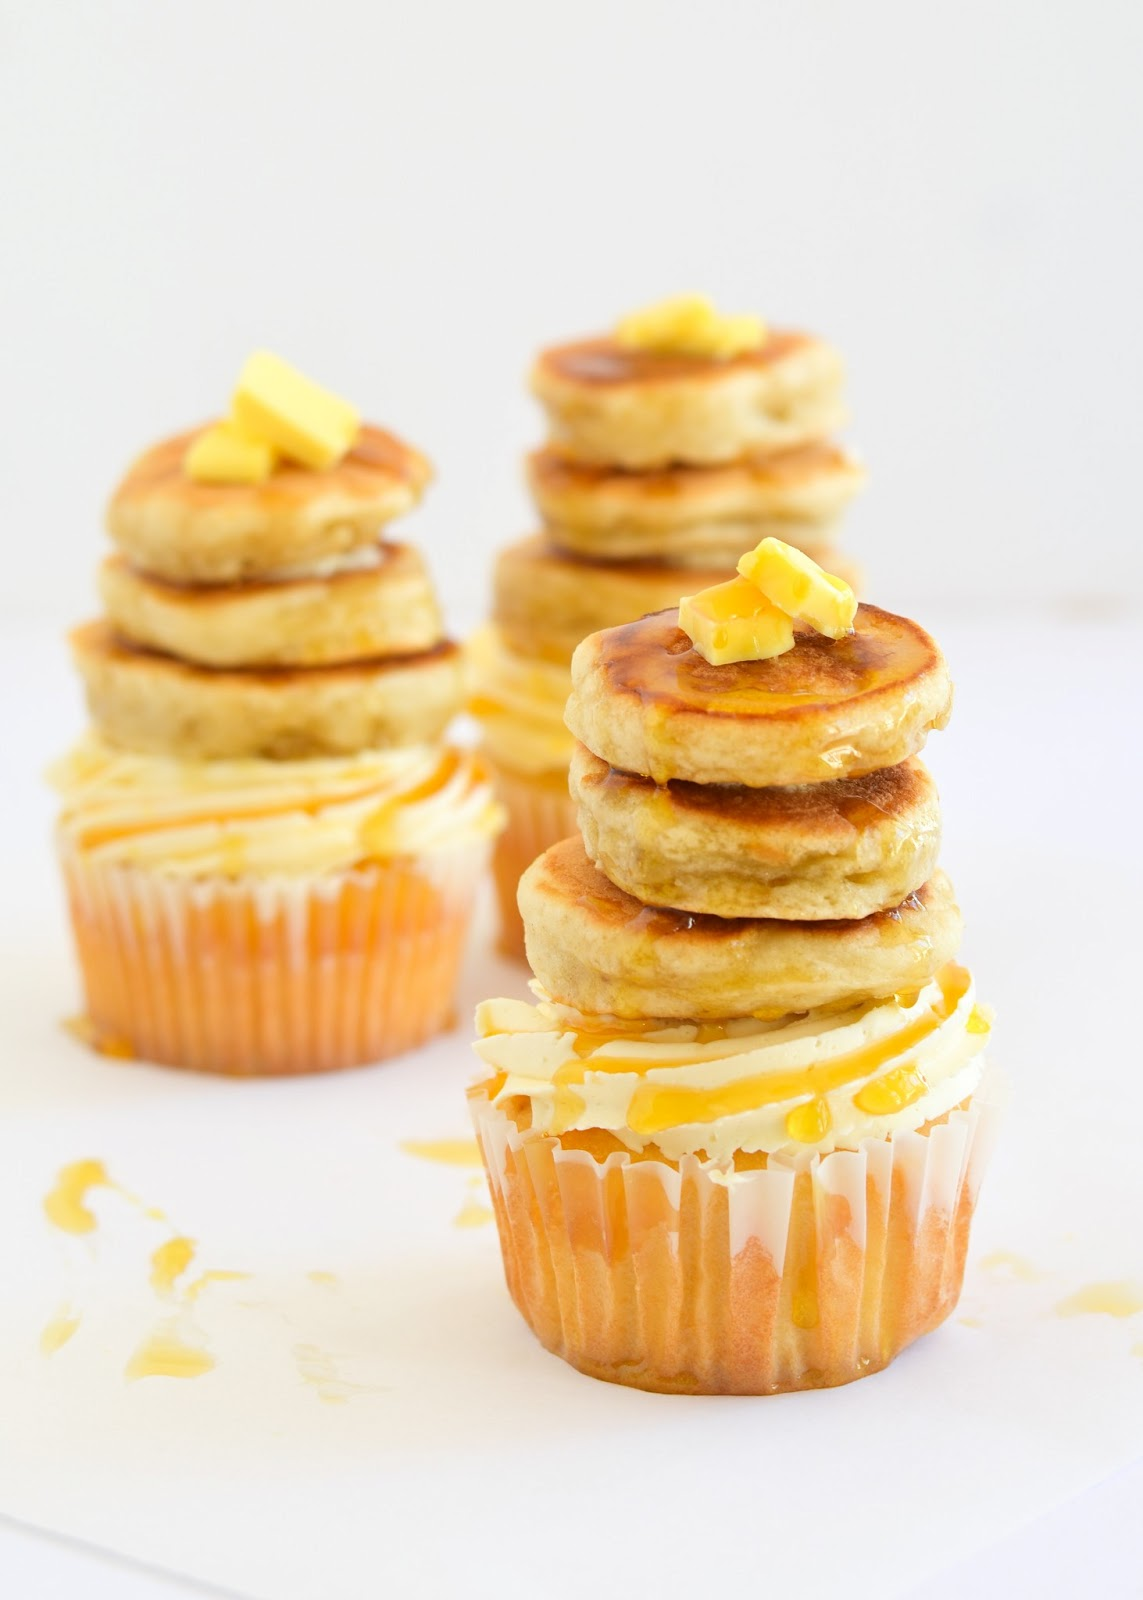 Not for me at all... - There isn't anything about a pancake on a cupcake that I want to try. We don't compliment one another, nor are we similar.However, I guarantee it is all someone has ever dreamed about.